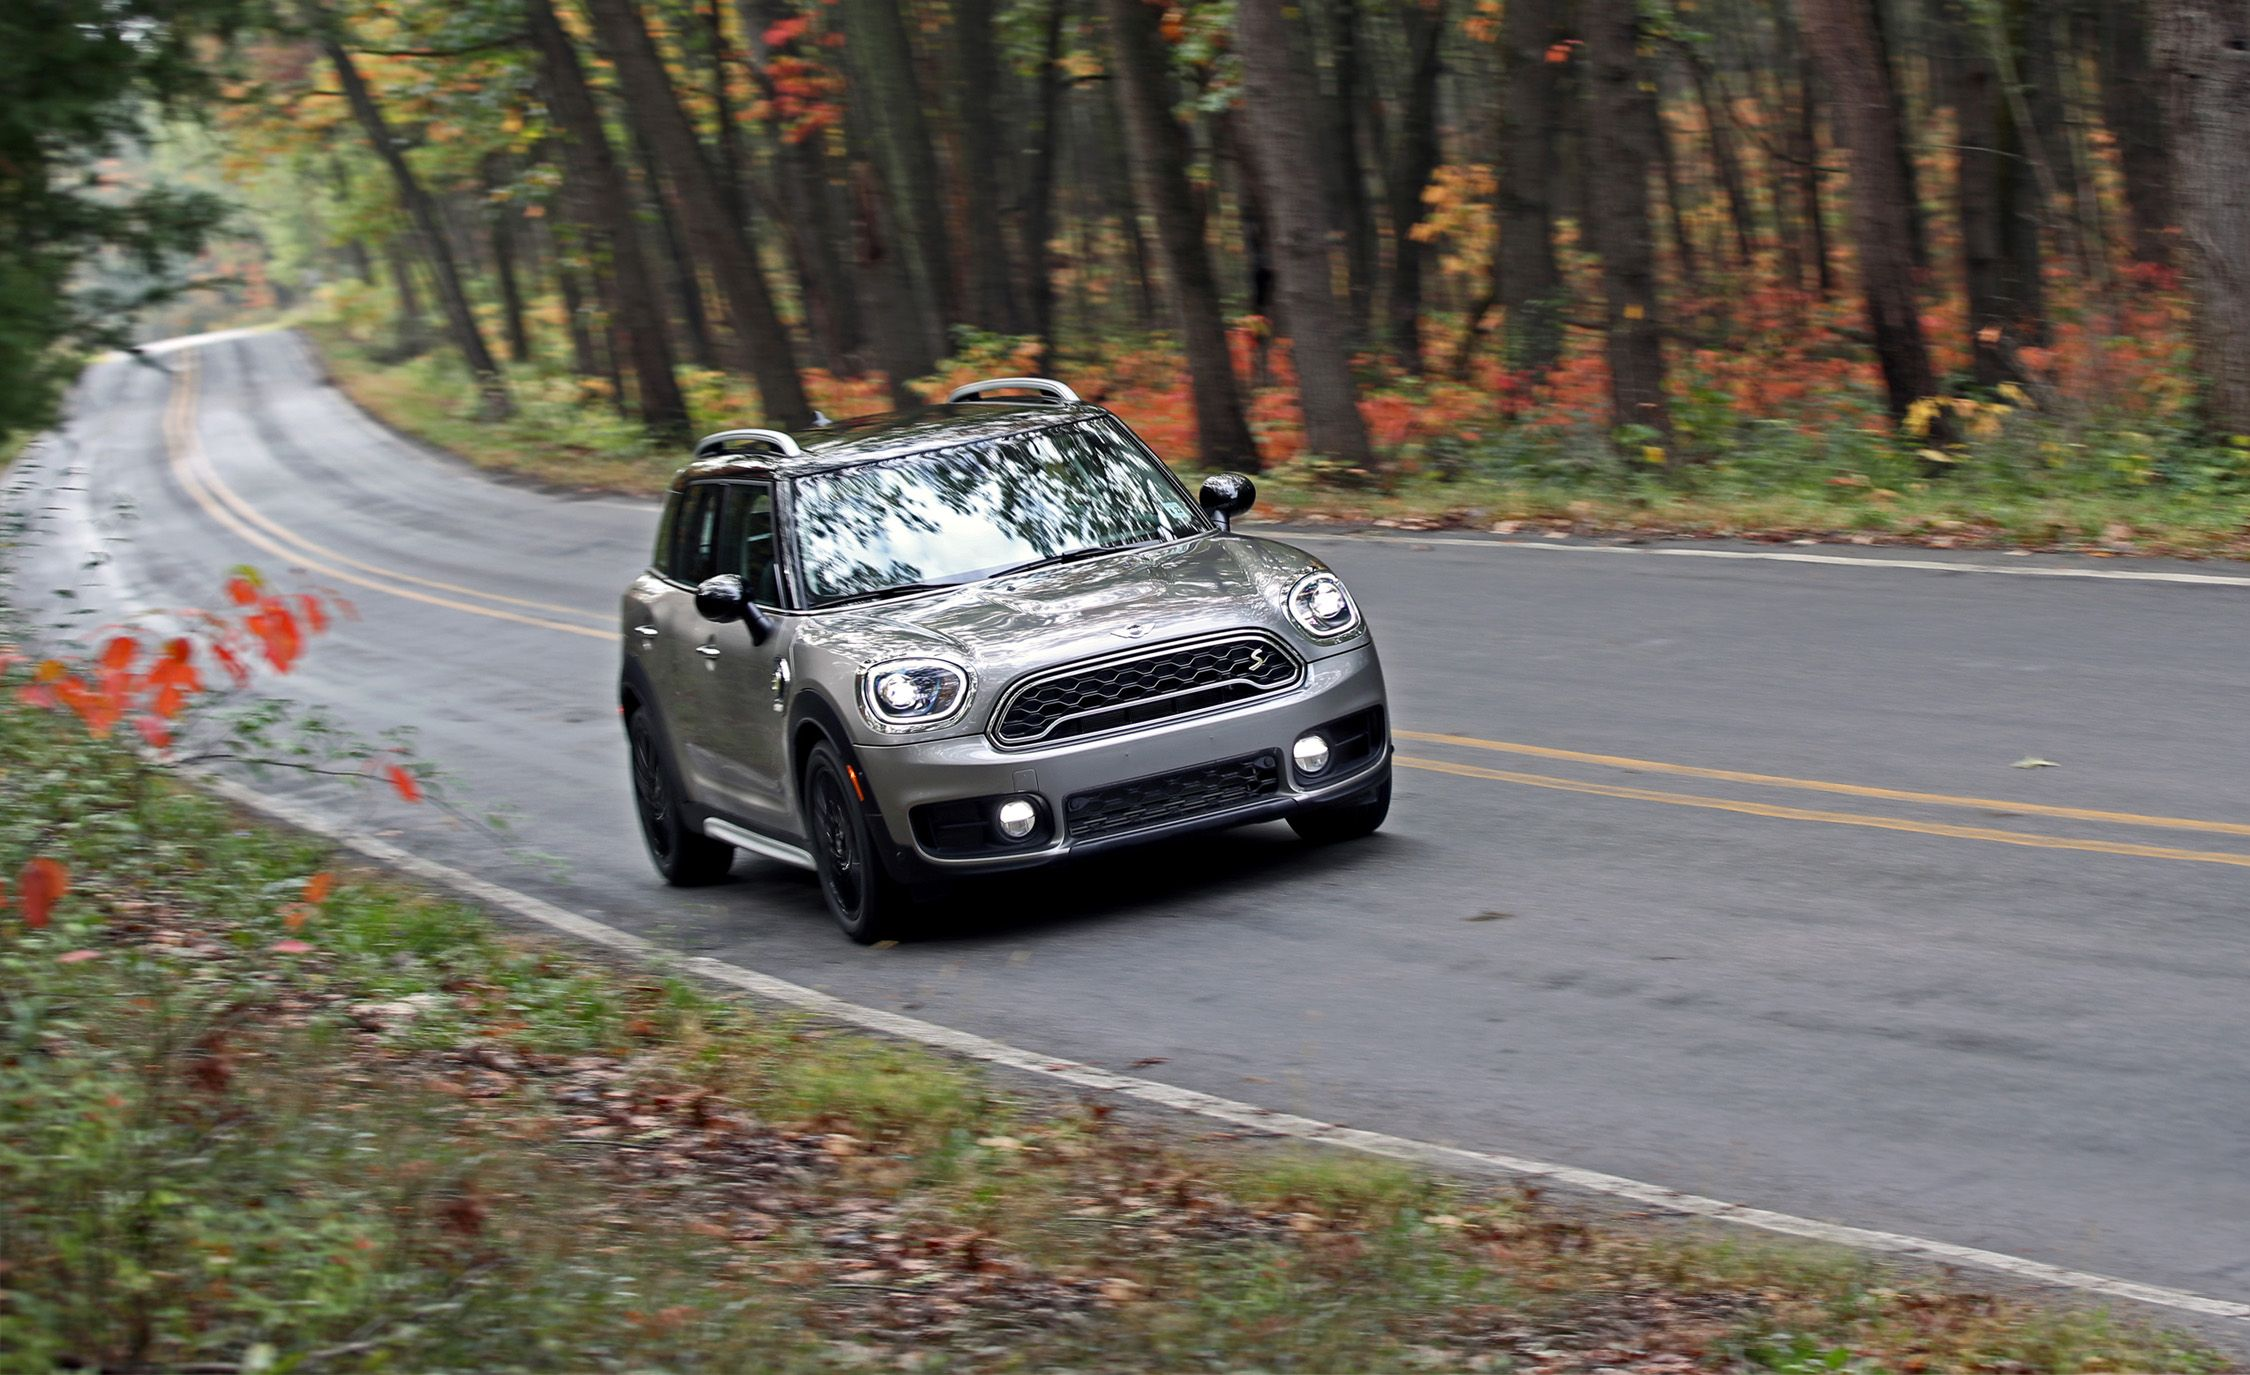 2019 Mini Cooper Countryman S Reviews Price Photos And Specs Car Driver